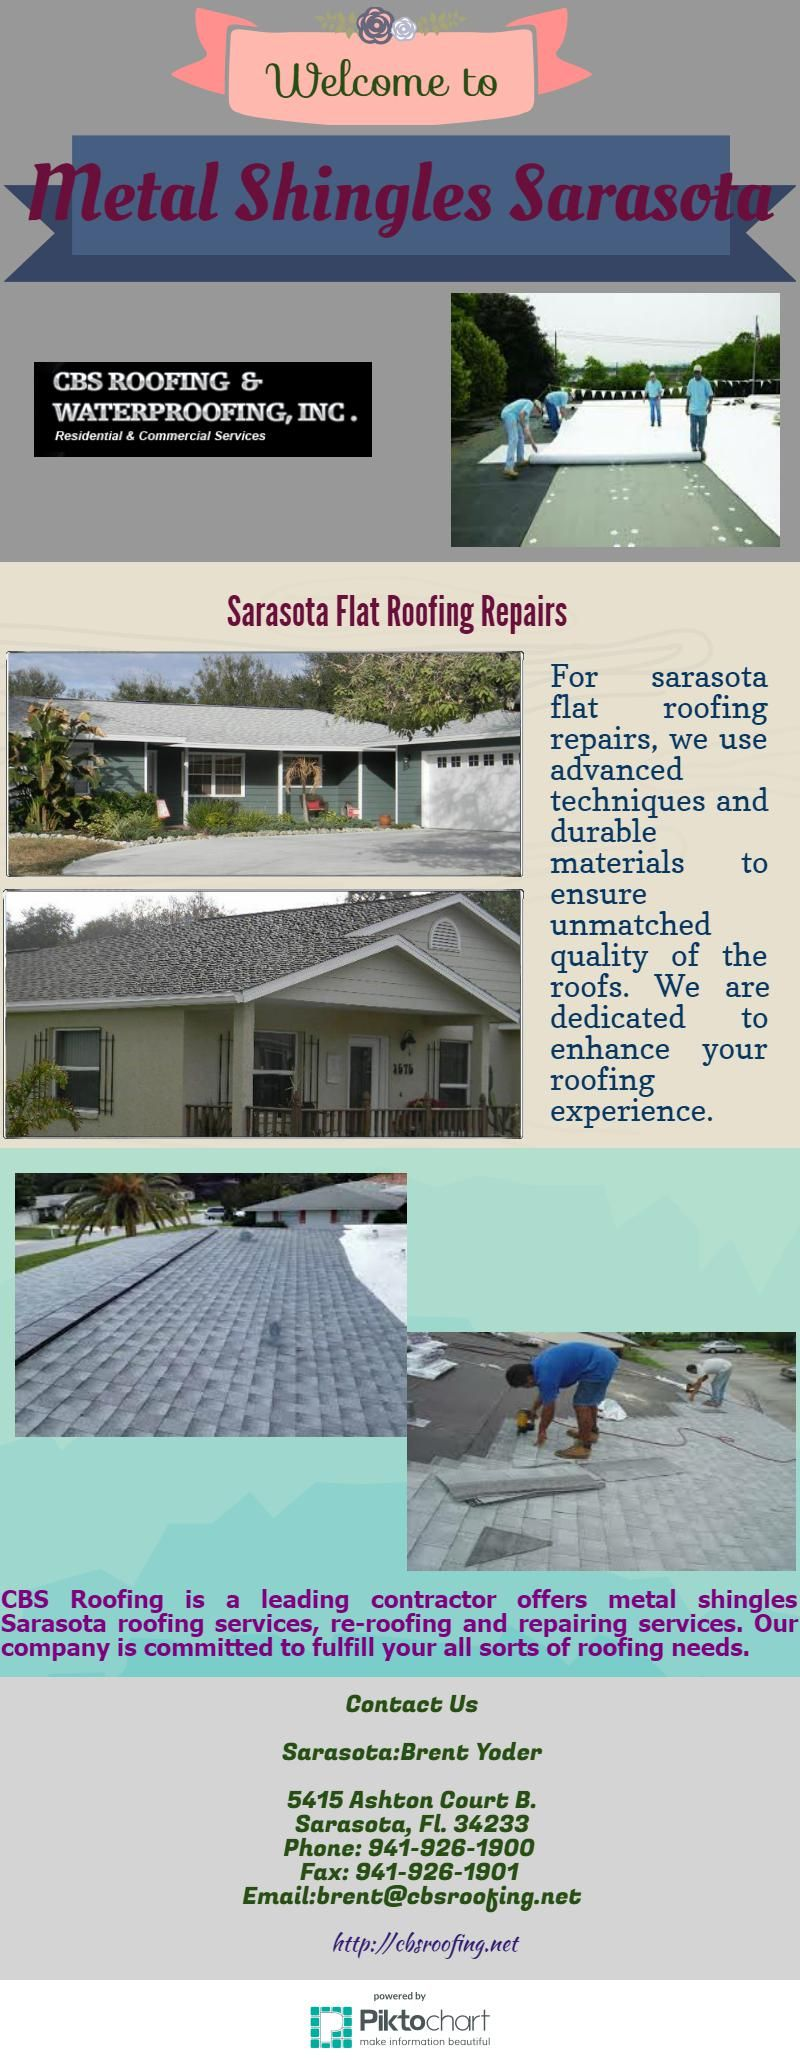 We Provide Tiles For Roofs Sarasota For Your Residential And Commercial Premises Our Company Specializes In Providing Highest Q Sarasota Roofing Roof Shingles